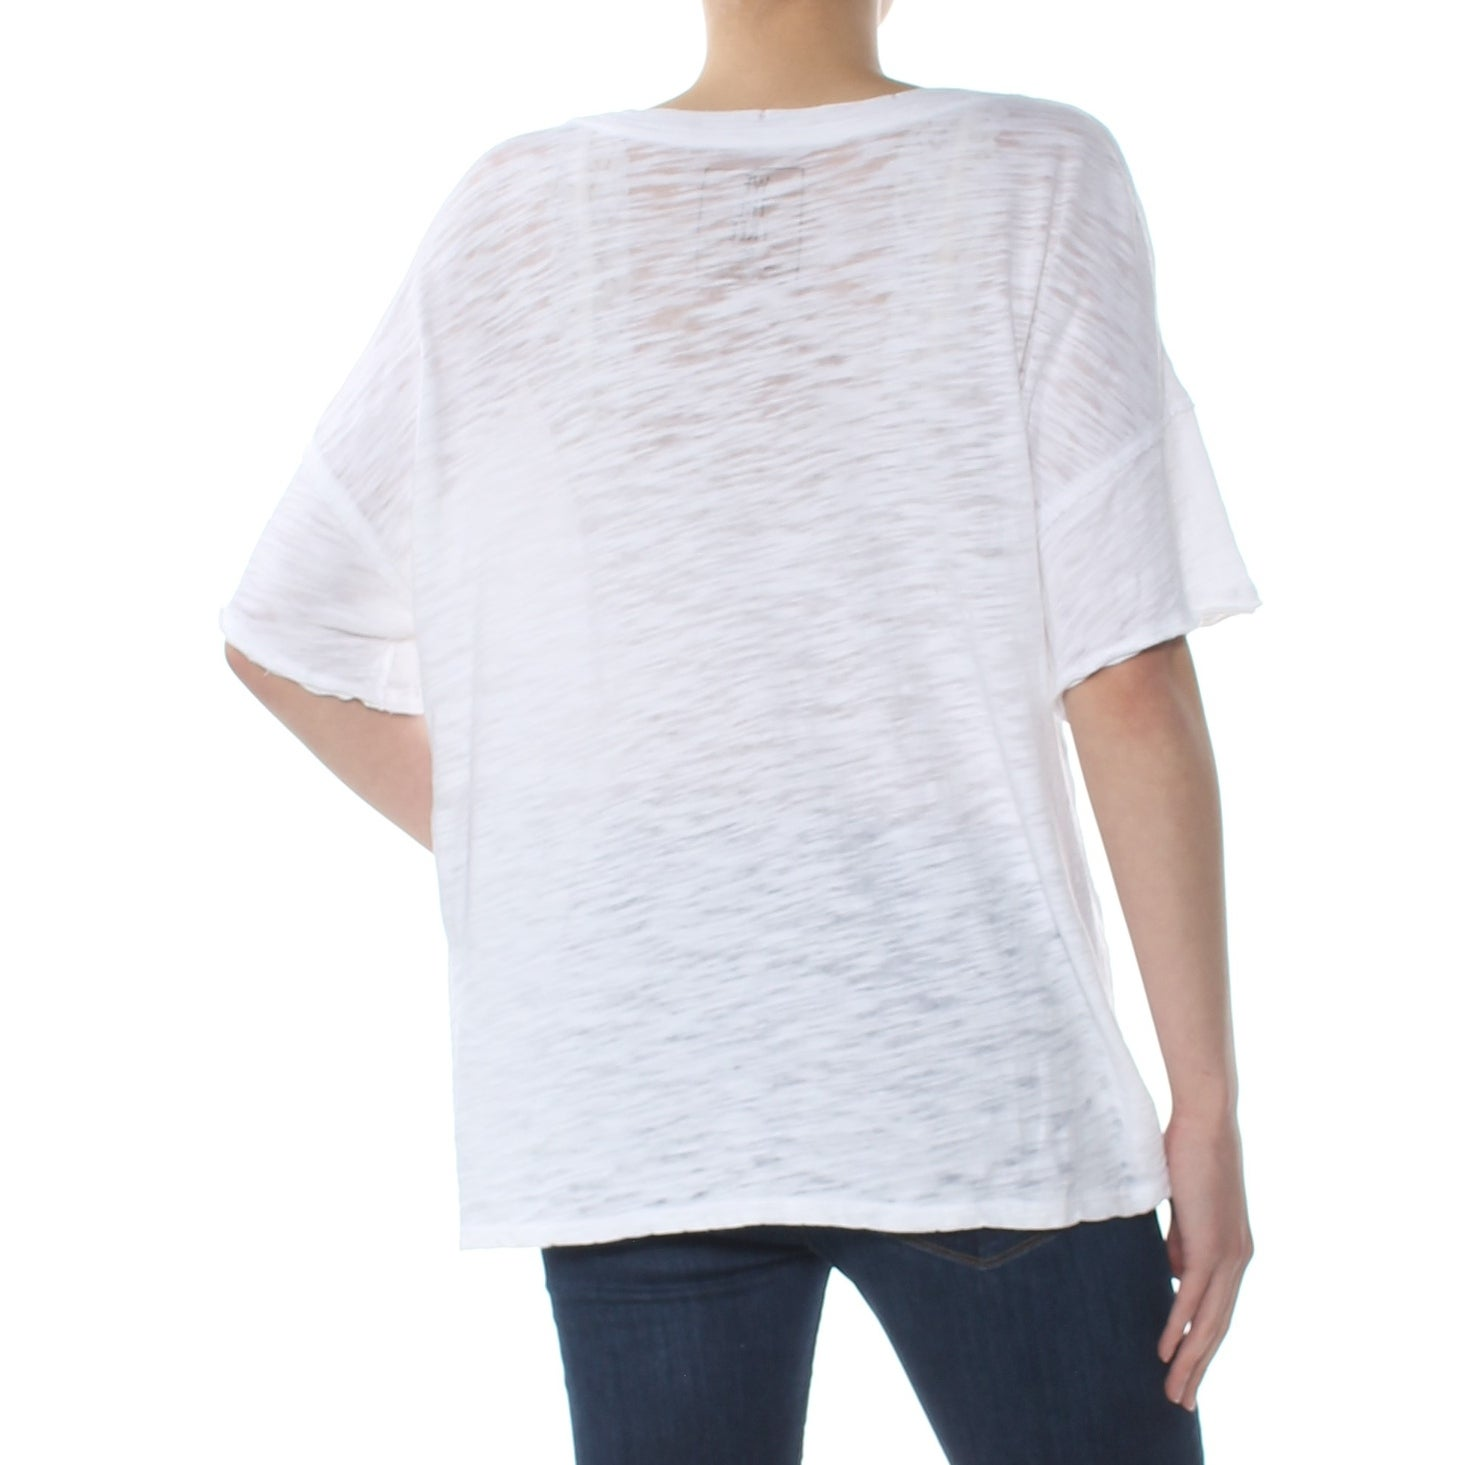 7b927eb6247b Shop FREE PEOPLE Womens White Jordan Tee Short Sleeve V Neck Top Size  M -  Free Shipping On Orders Over  45 - Overstock - 28036395